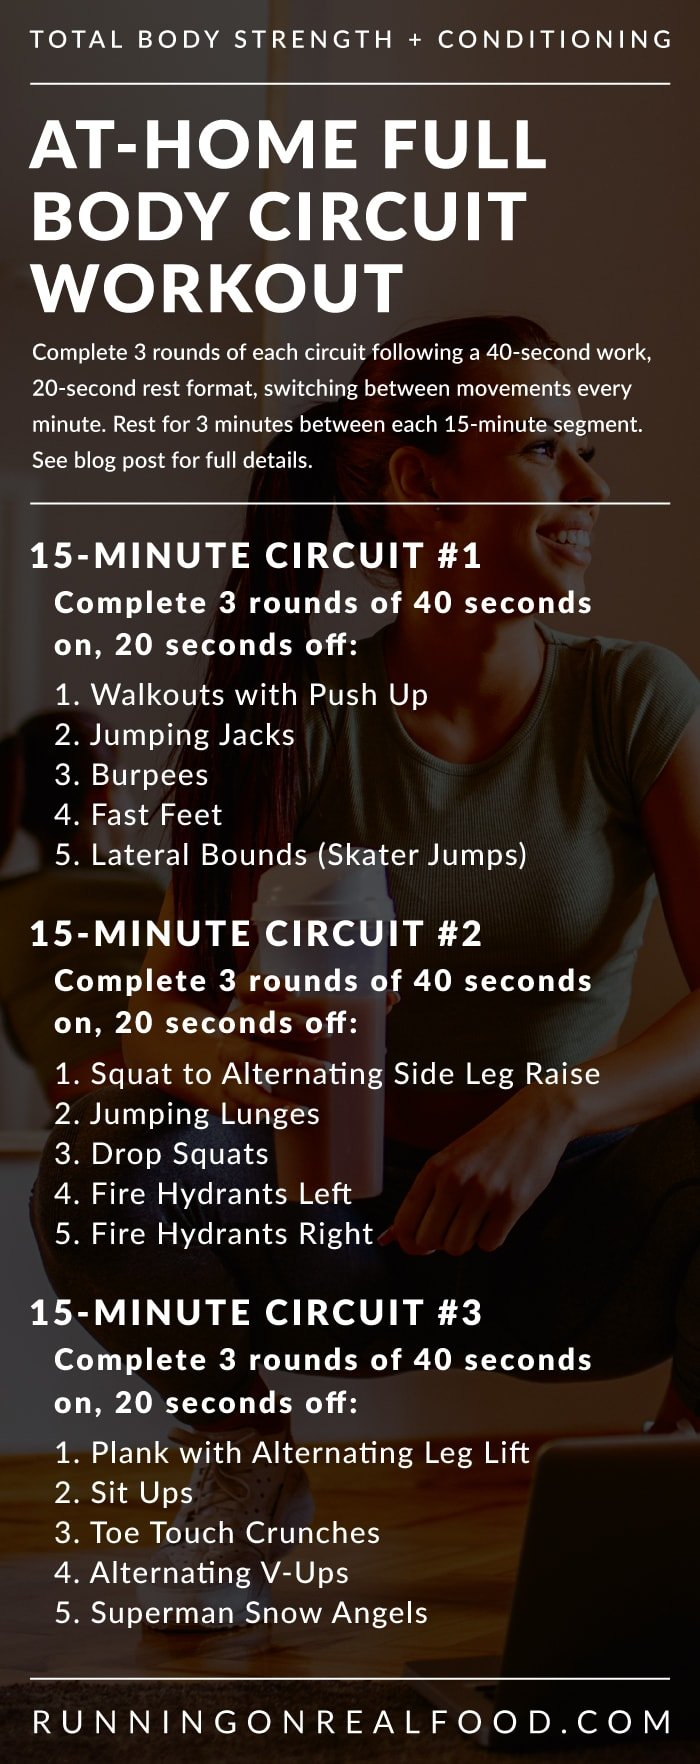 Workout details for an at-home circuit training workout.